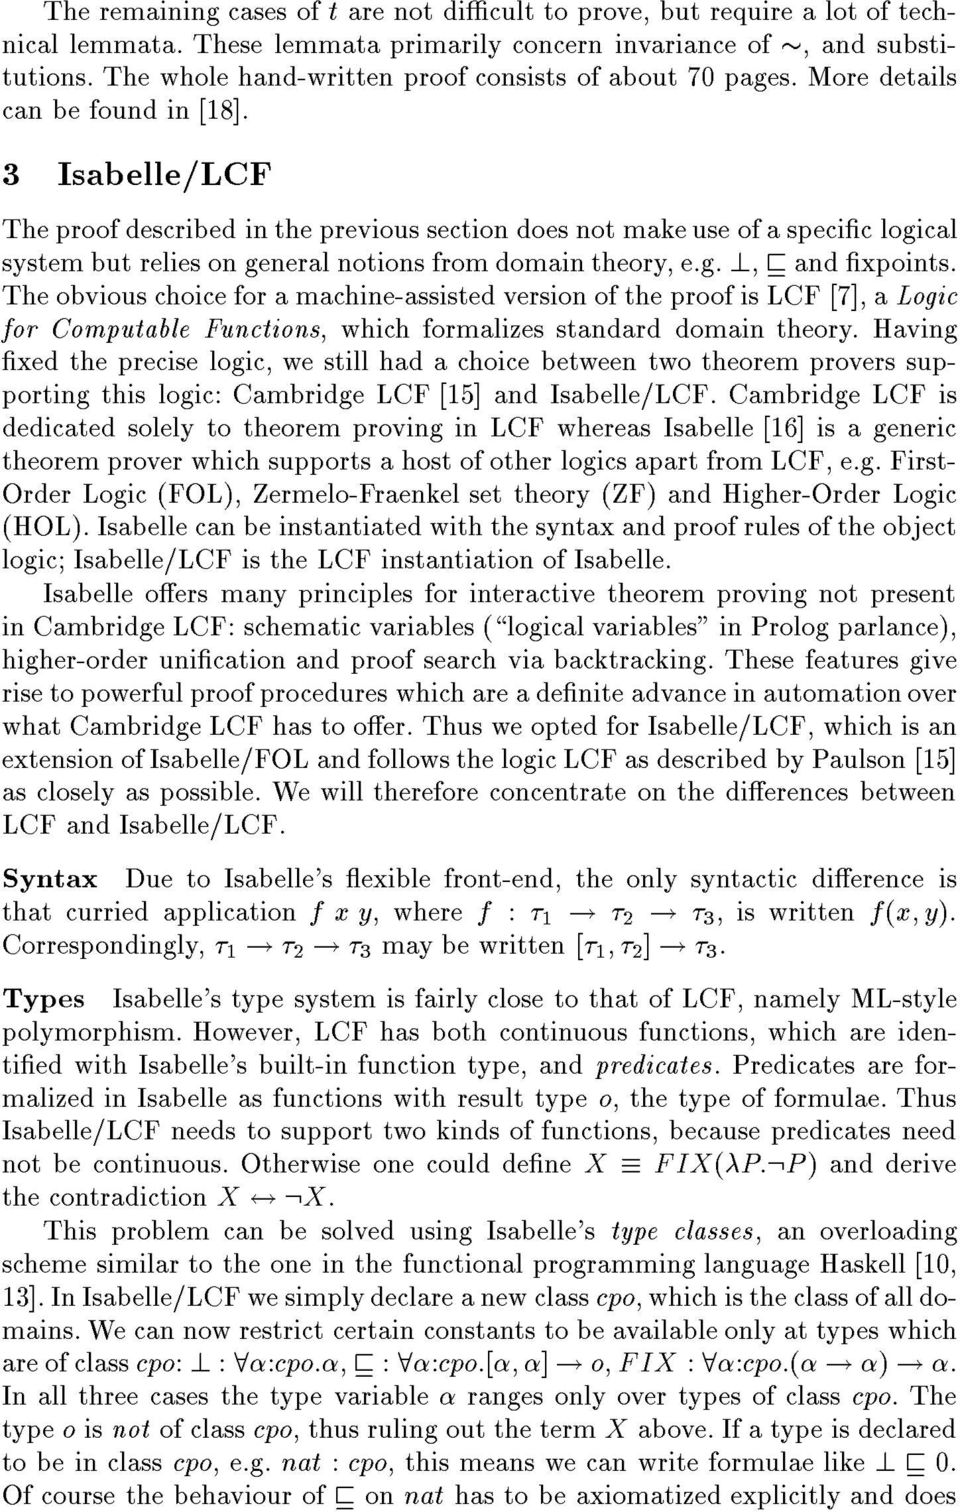 3 Isabelle/LCF The proof described in the previous section does not make use of a specic logical system but relies on general notions from domain theory, e.g.?, v and xpoints.